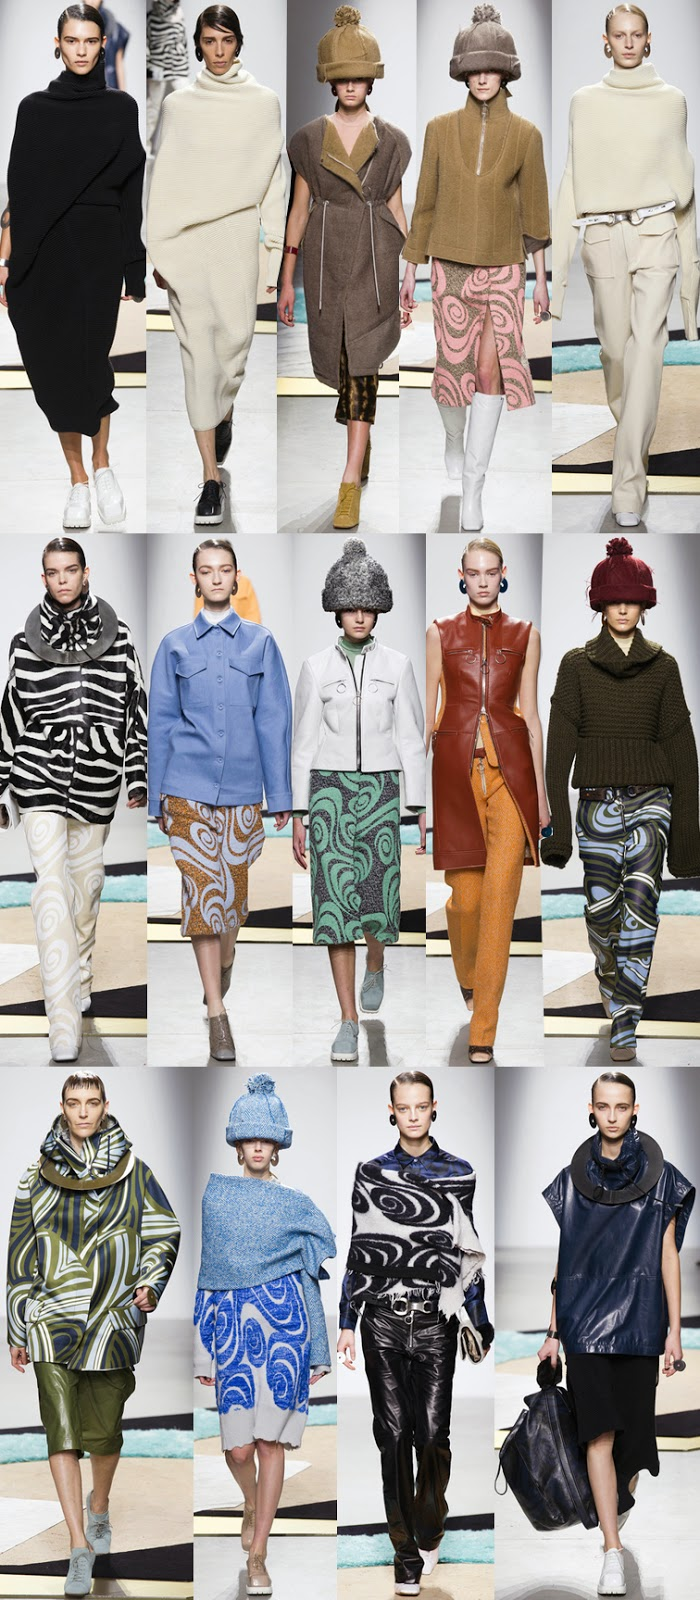 Acne Studios fall winter 2014 runway collection, PFW, FW14, AW14, Paris fashion week